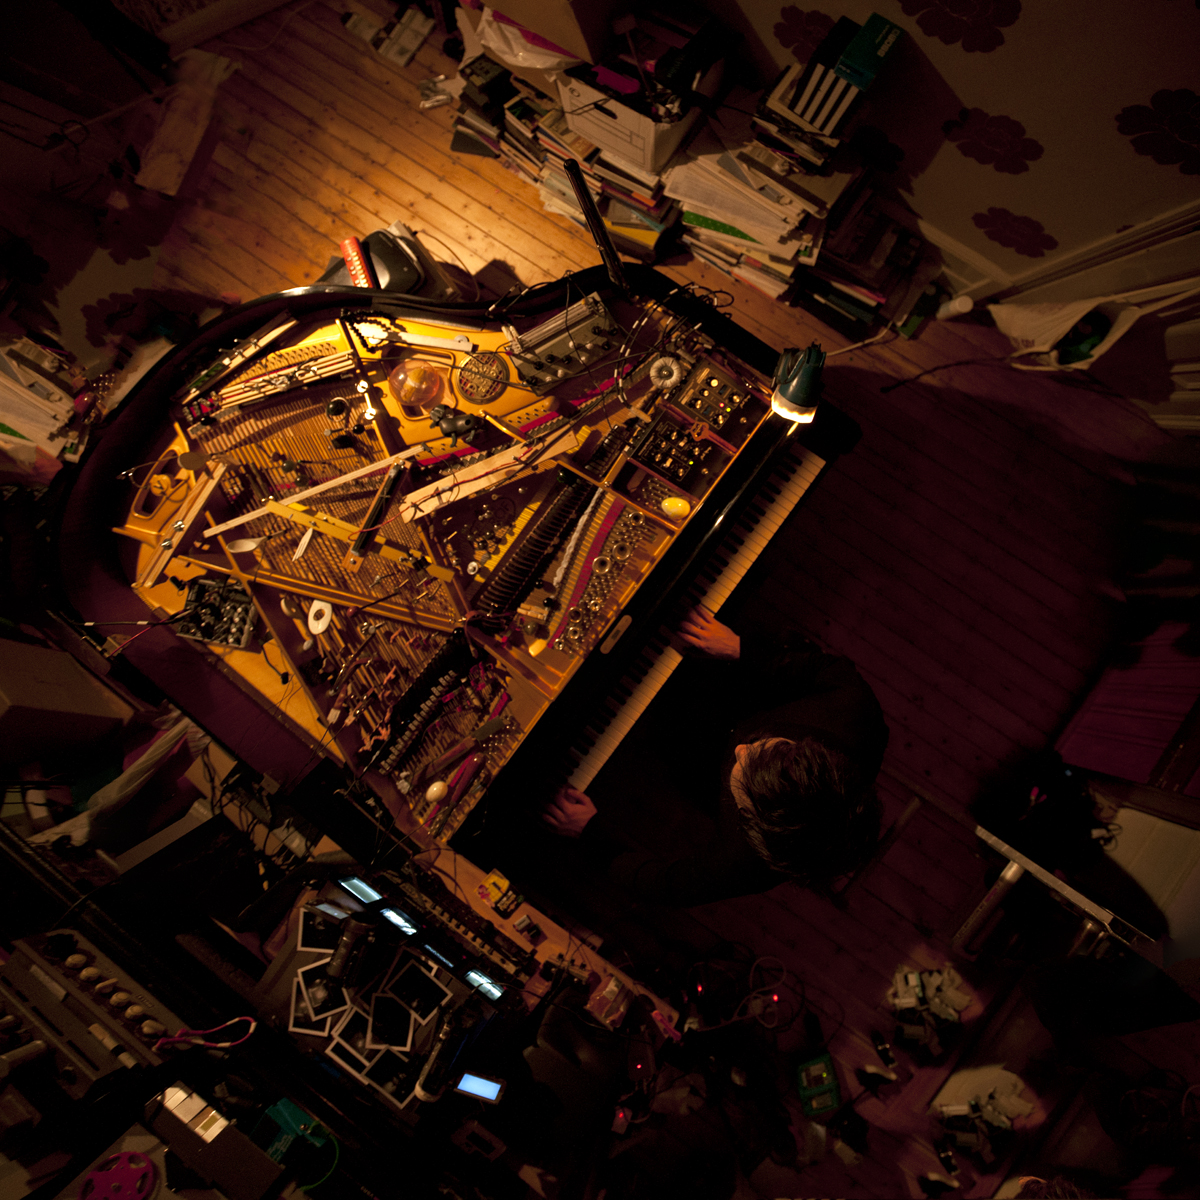 klavikon piano from above